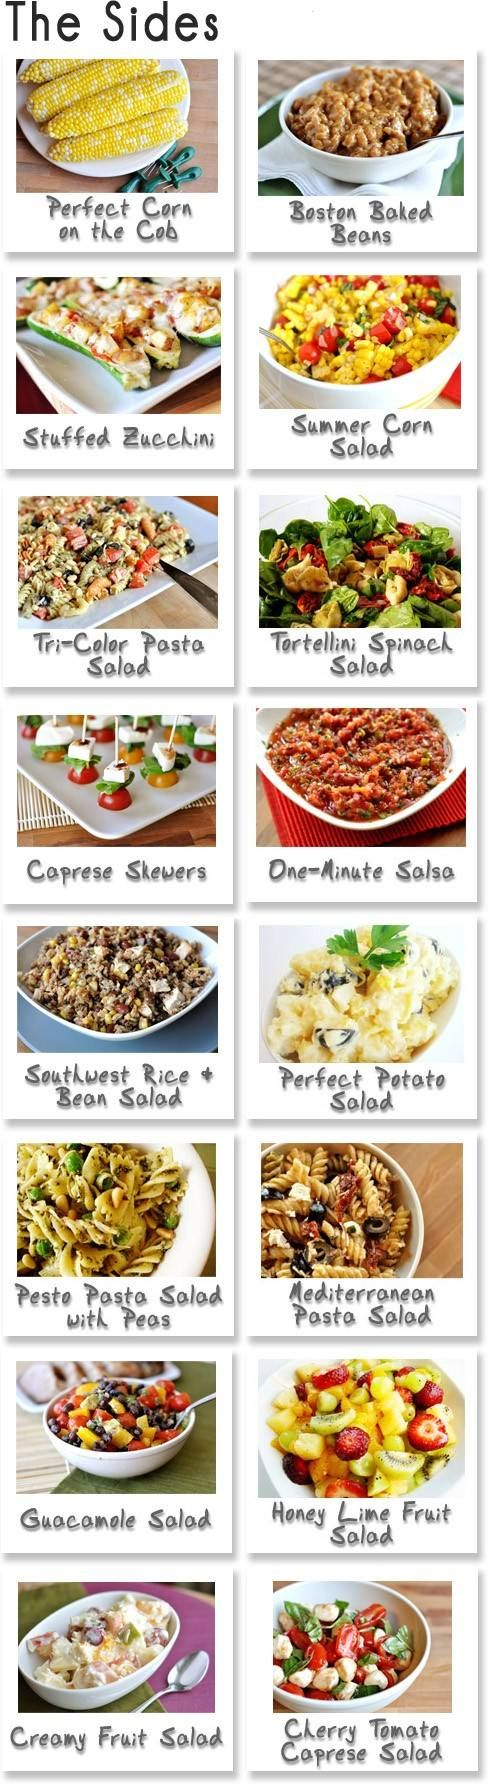 Cookout Sides: Summer Side Dishes, Ideas, Side Dishes For Cookout, Bbq Sides, Tasti Recipes, Bbq Food, Summer Cookout, Side Recipes, Cookout Side